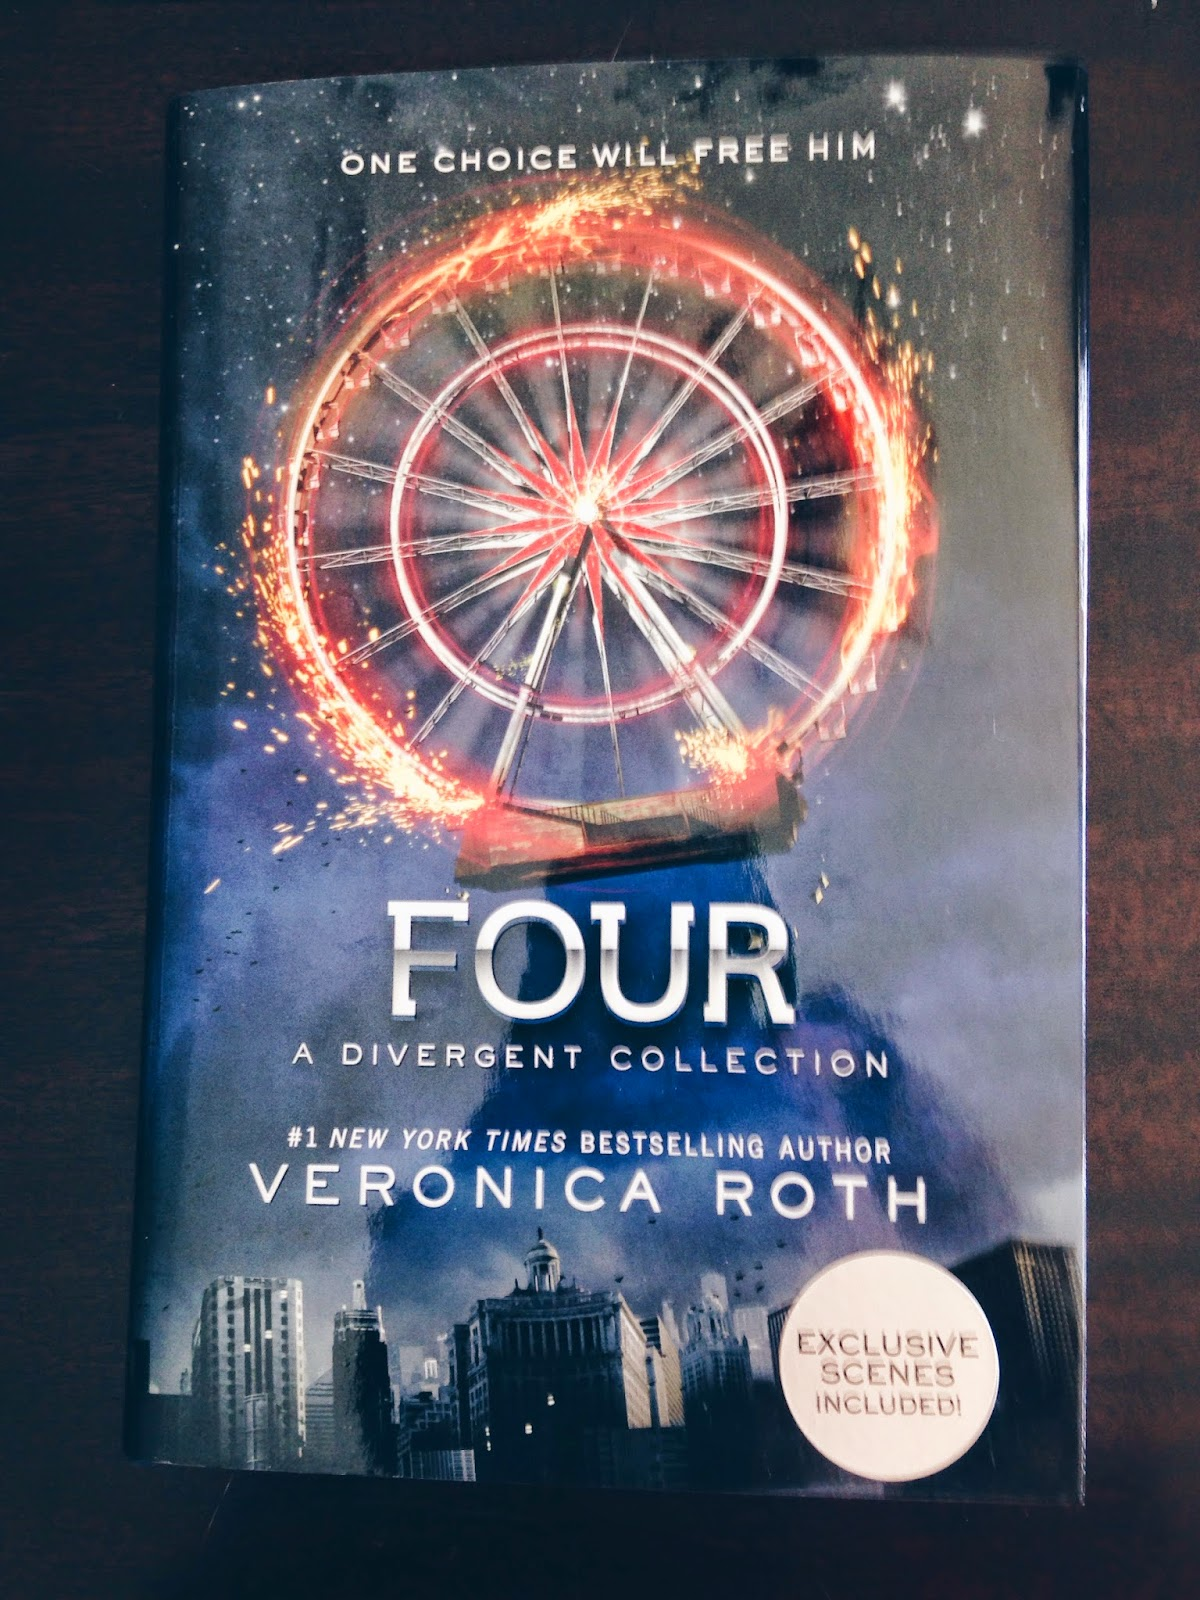 Courtney Tomesch Four Divergent Collection Veronica Roth